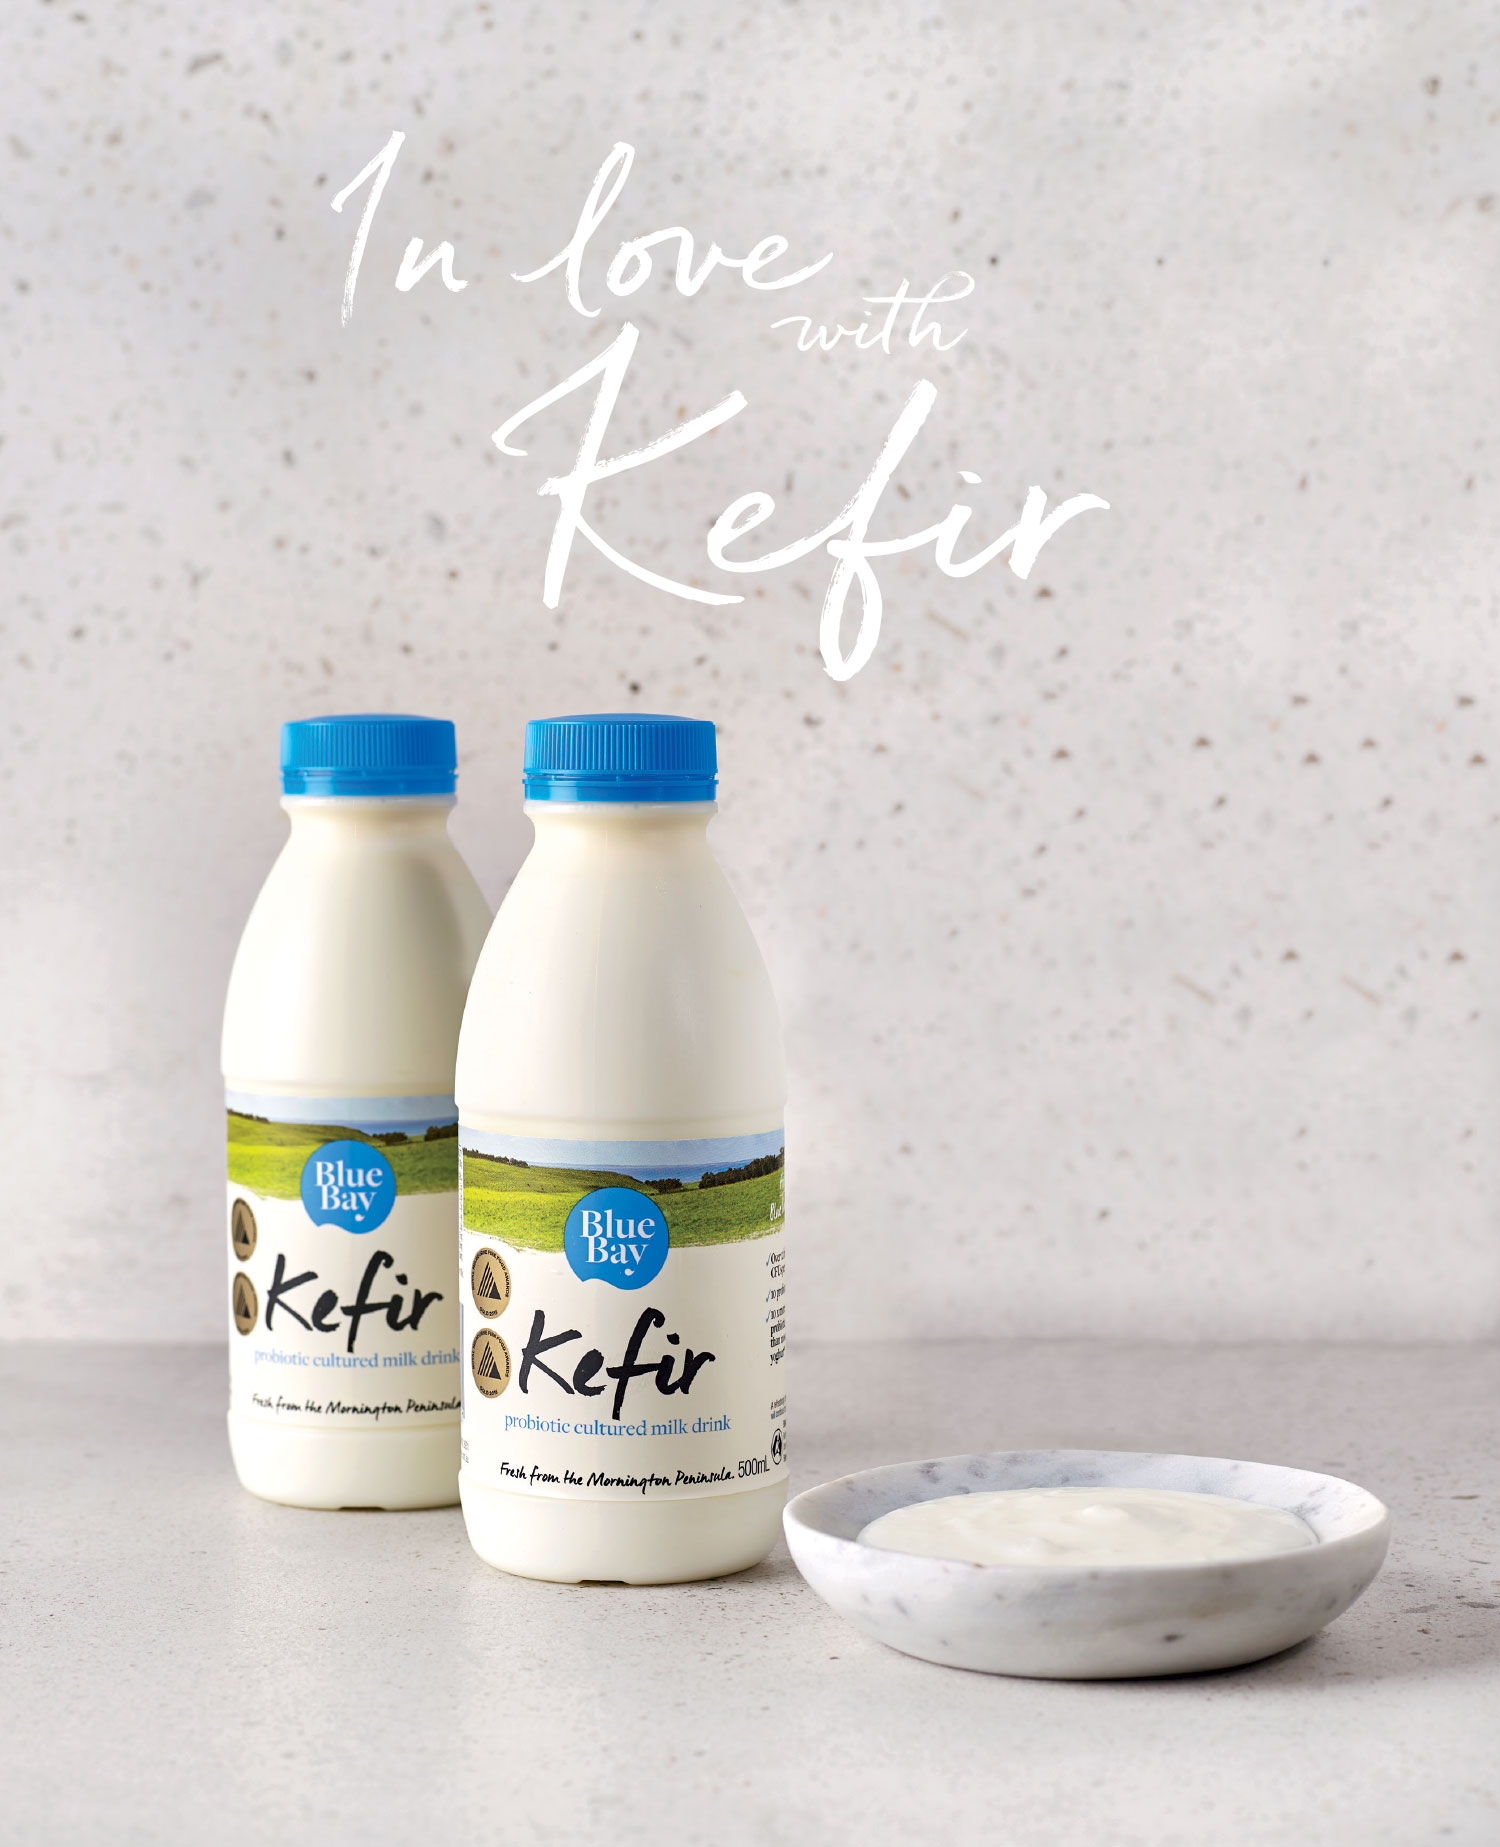 Blue Bay Kefir